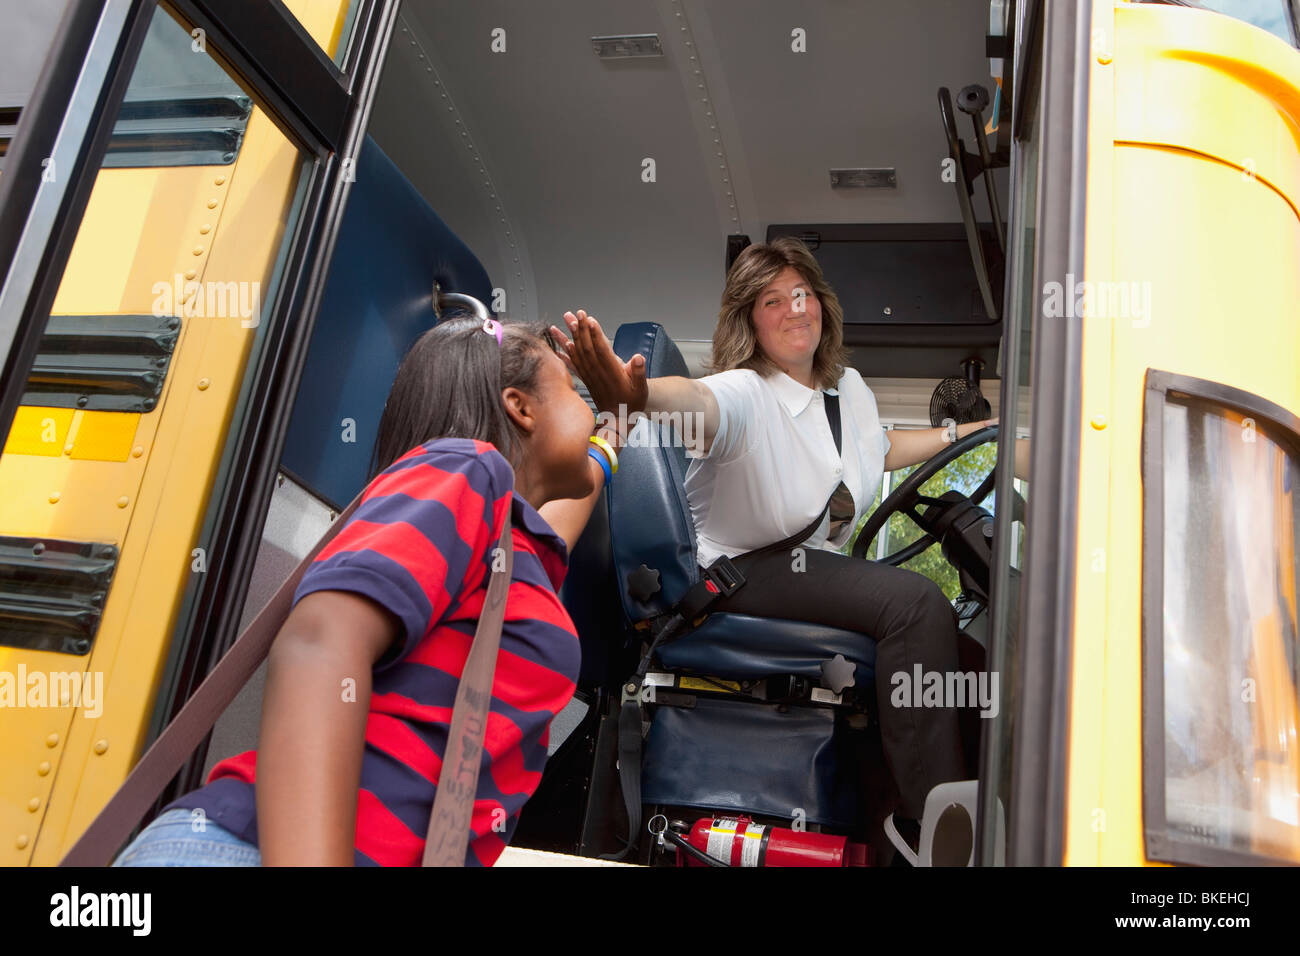 Student And School Bus Driver Slapping Hands In A 'high Five' - Stock Image